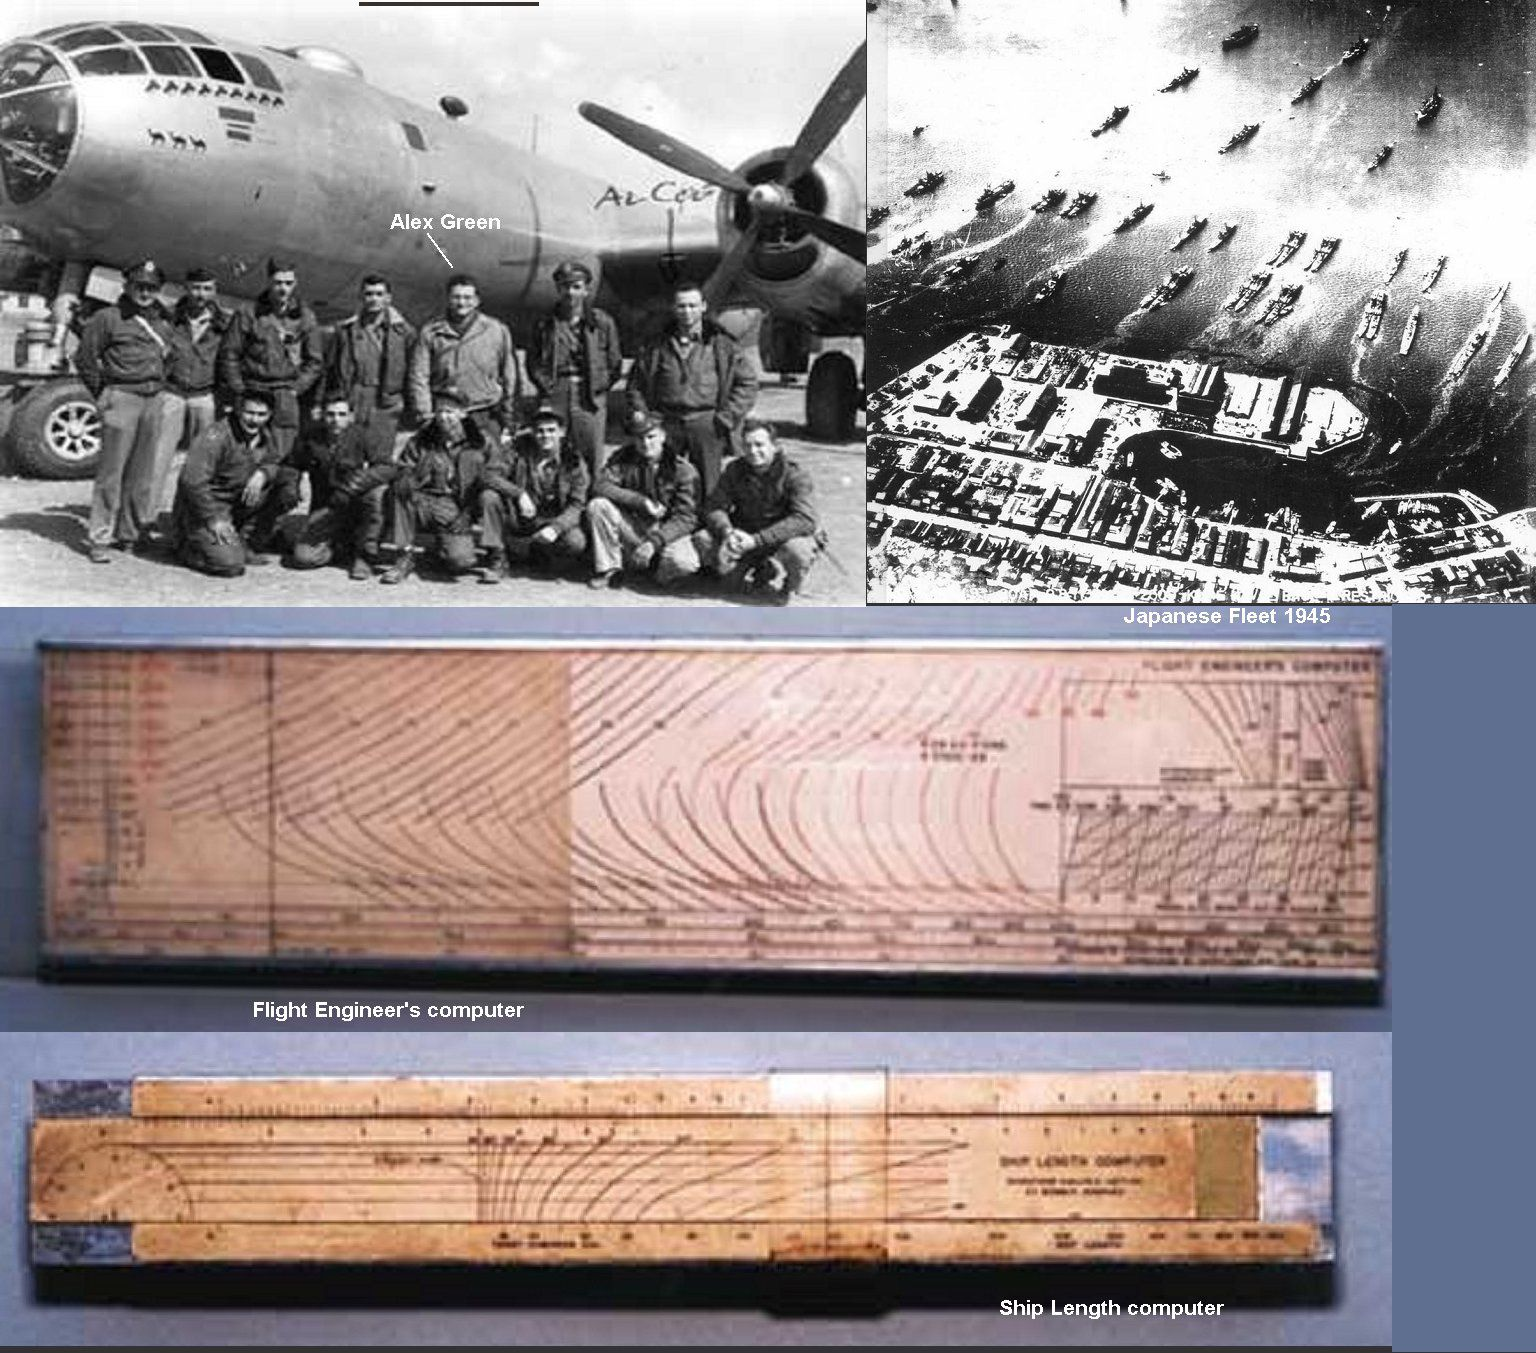 Faber Castell Old Calculator Web Museum Friden 130 Prototype Circuit Board Alex Green Was Awarded The Medal Of Freedom In 1947 Currently Researching Thermal Waste To Energy Conversion At U F And A Fellow Oughtred